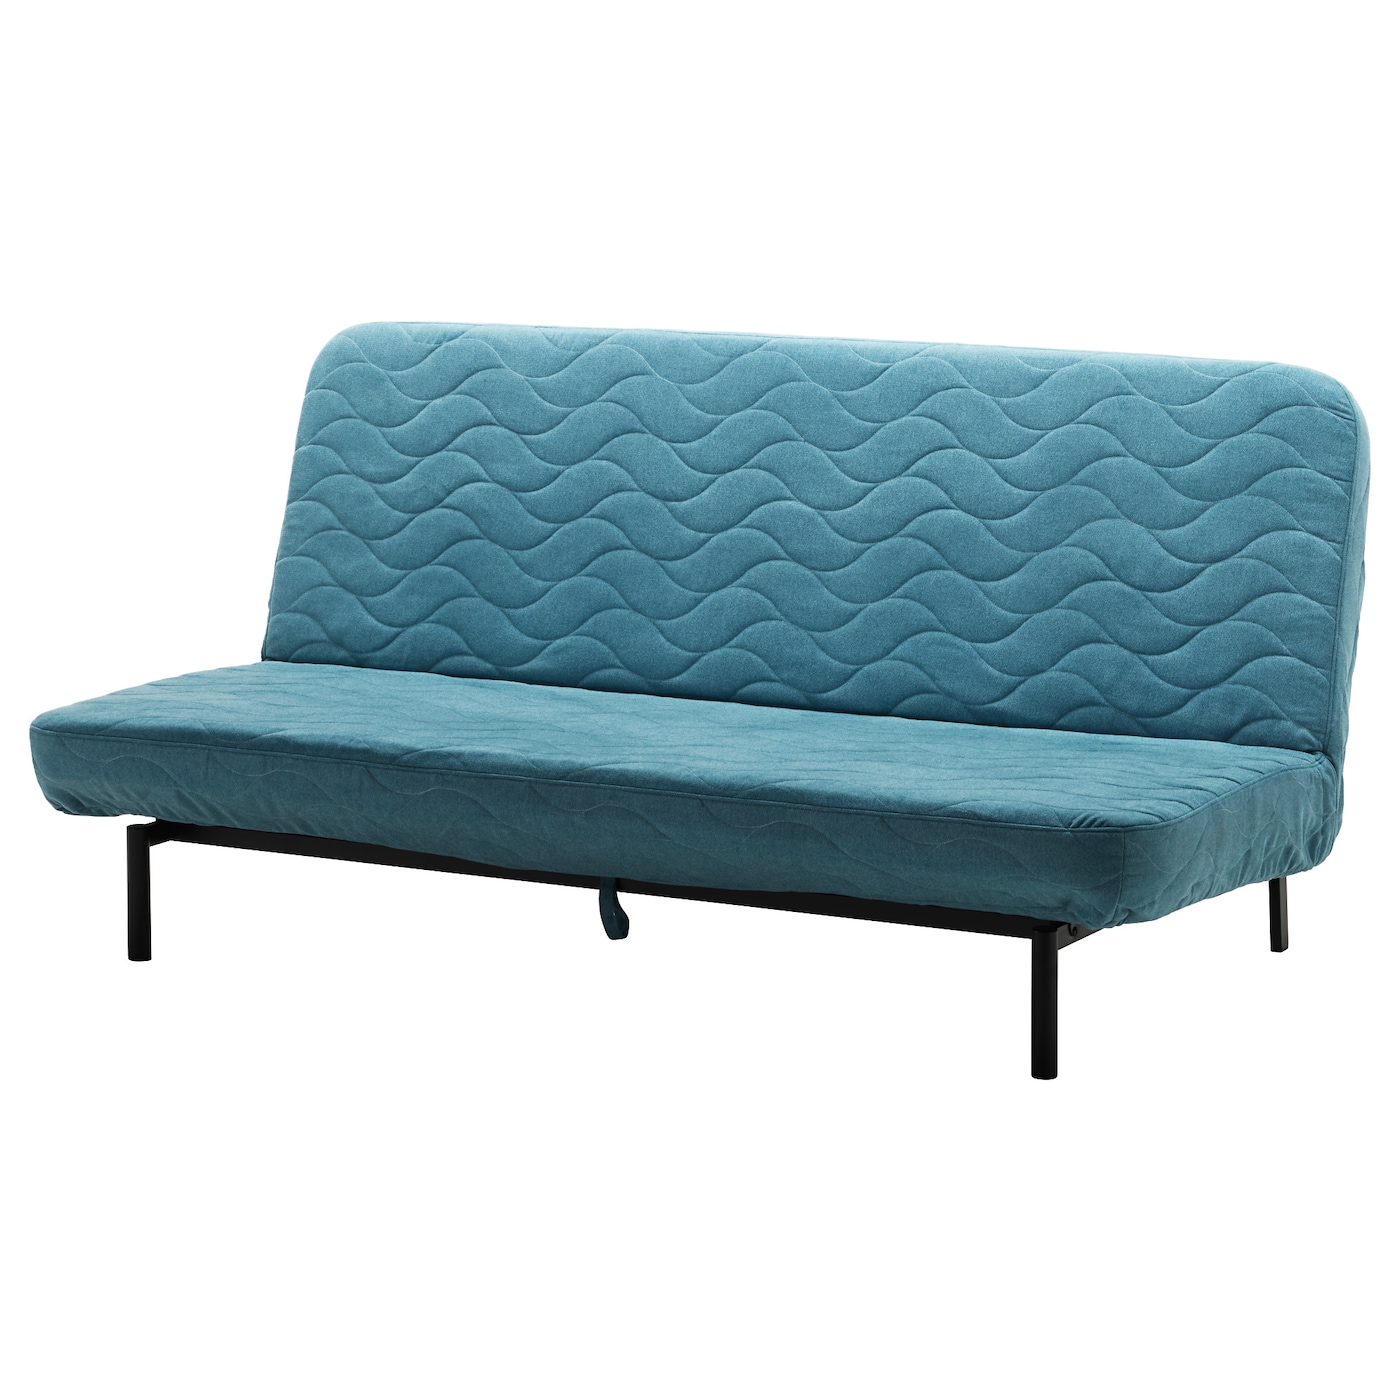 nyhamn 3 seat sofa bed with foam mattress borred green blue ikea. Black Bedroom Furniture Sets. Home Design Ideas